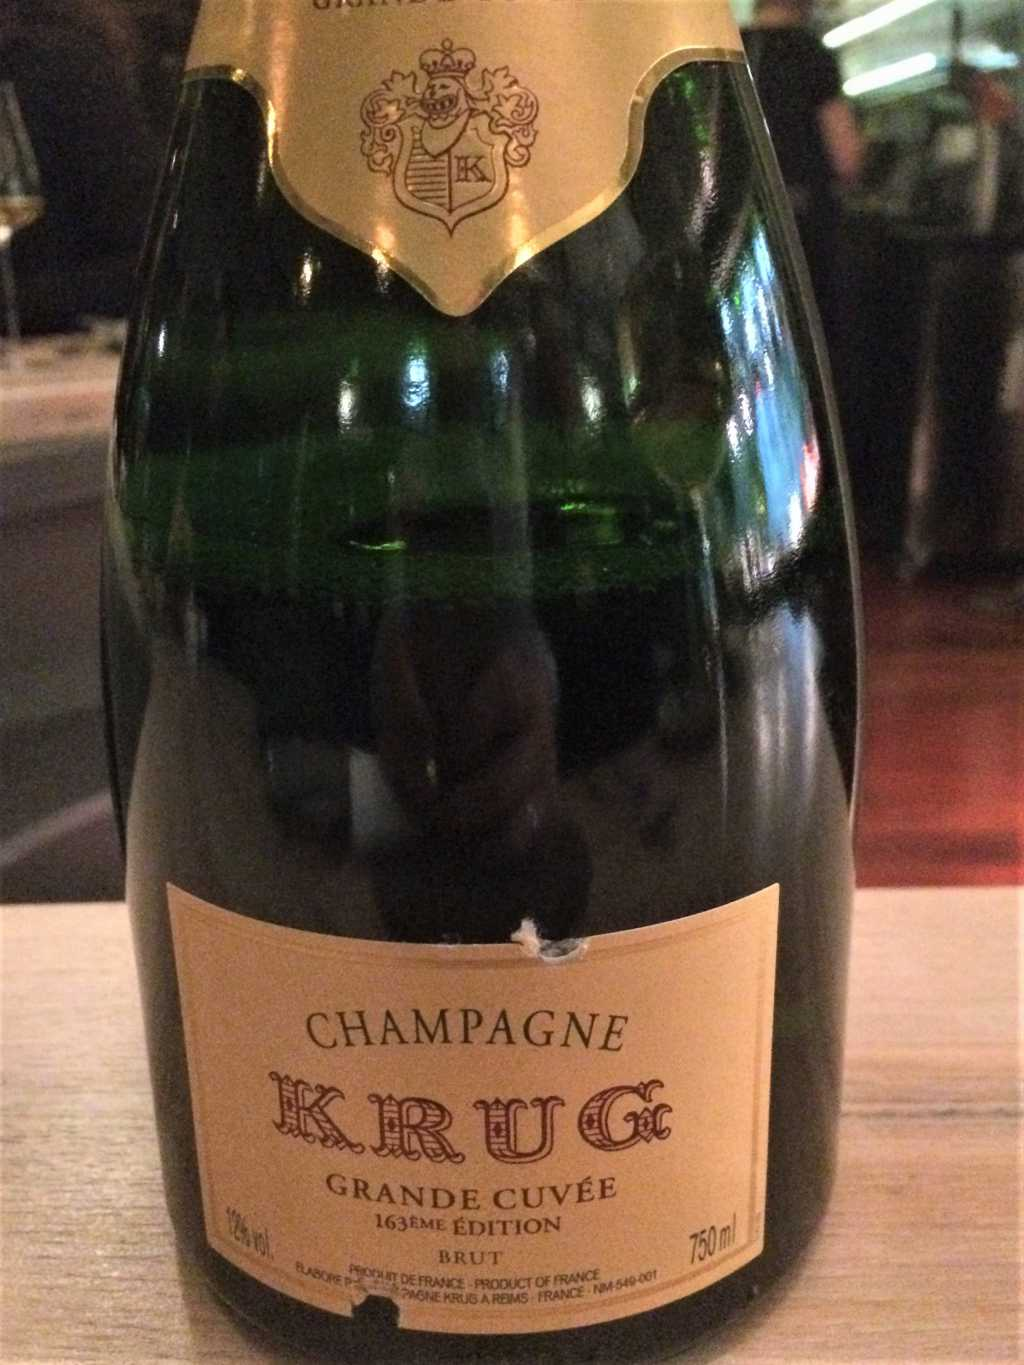 Krug Champagner auch glasweise